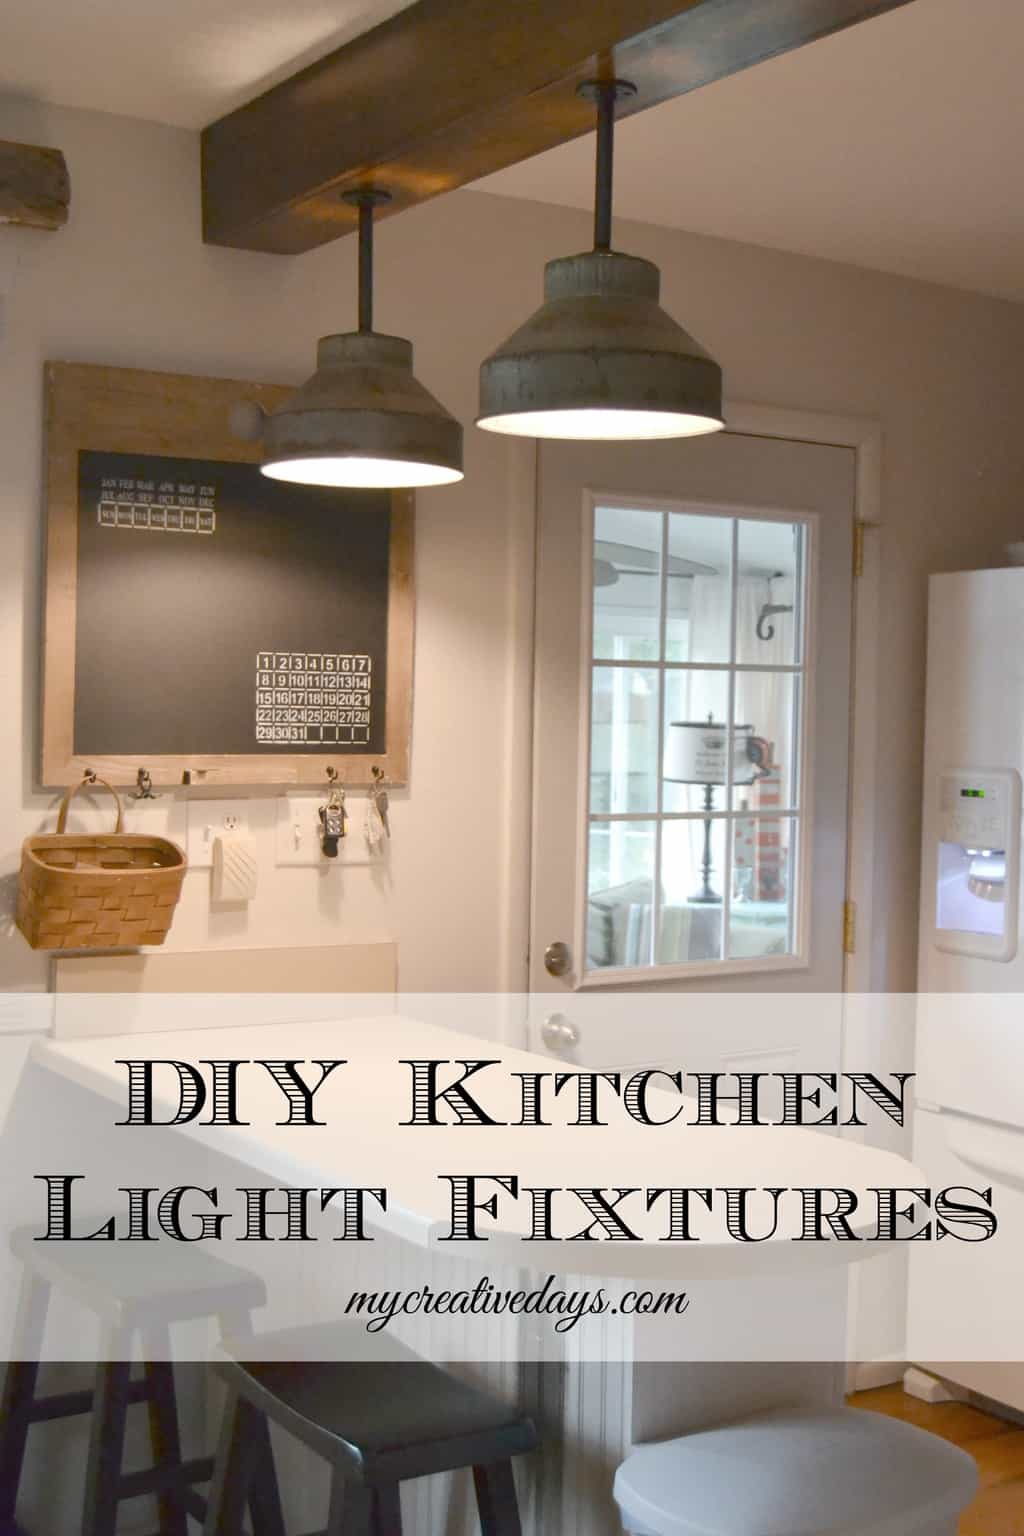 Lighting Above Kitchen Sink Inspiration - Light fixtures above kitchen sink